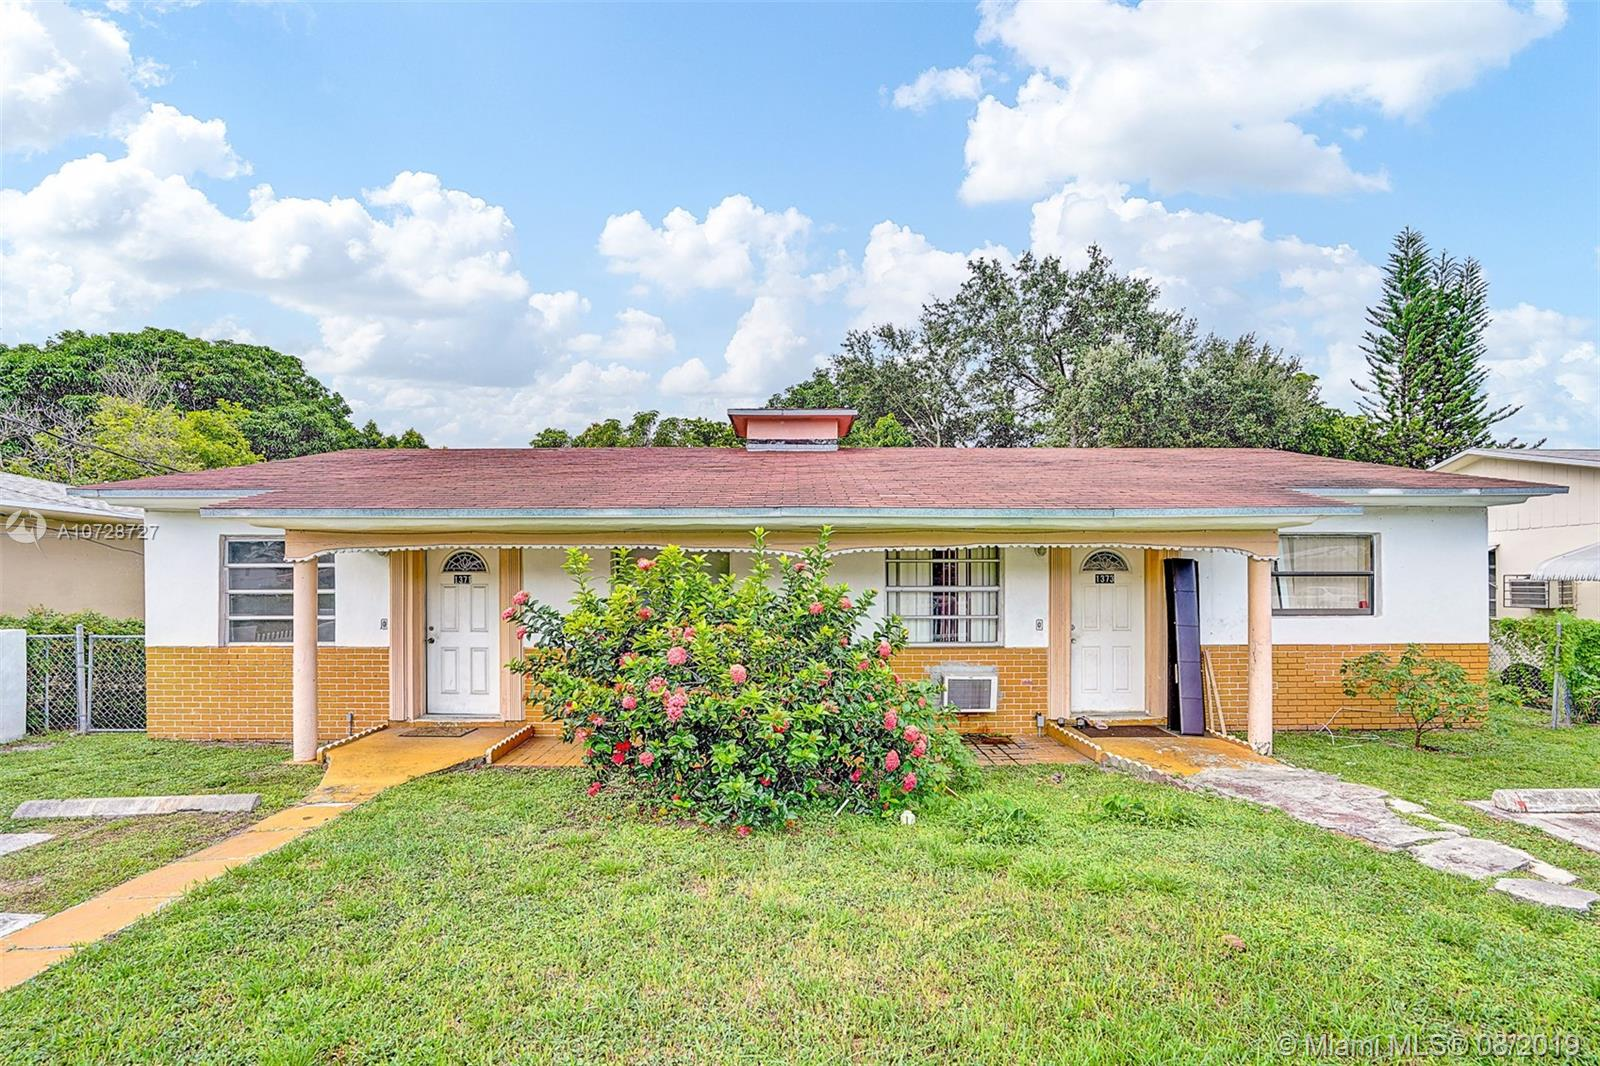 One of Miami Shores Homes for Sale at 1371 NE 150th St